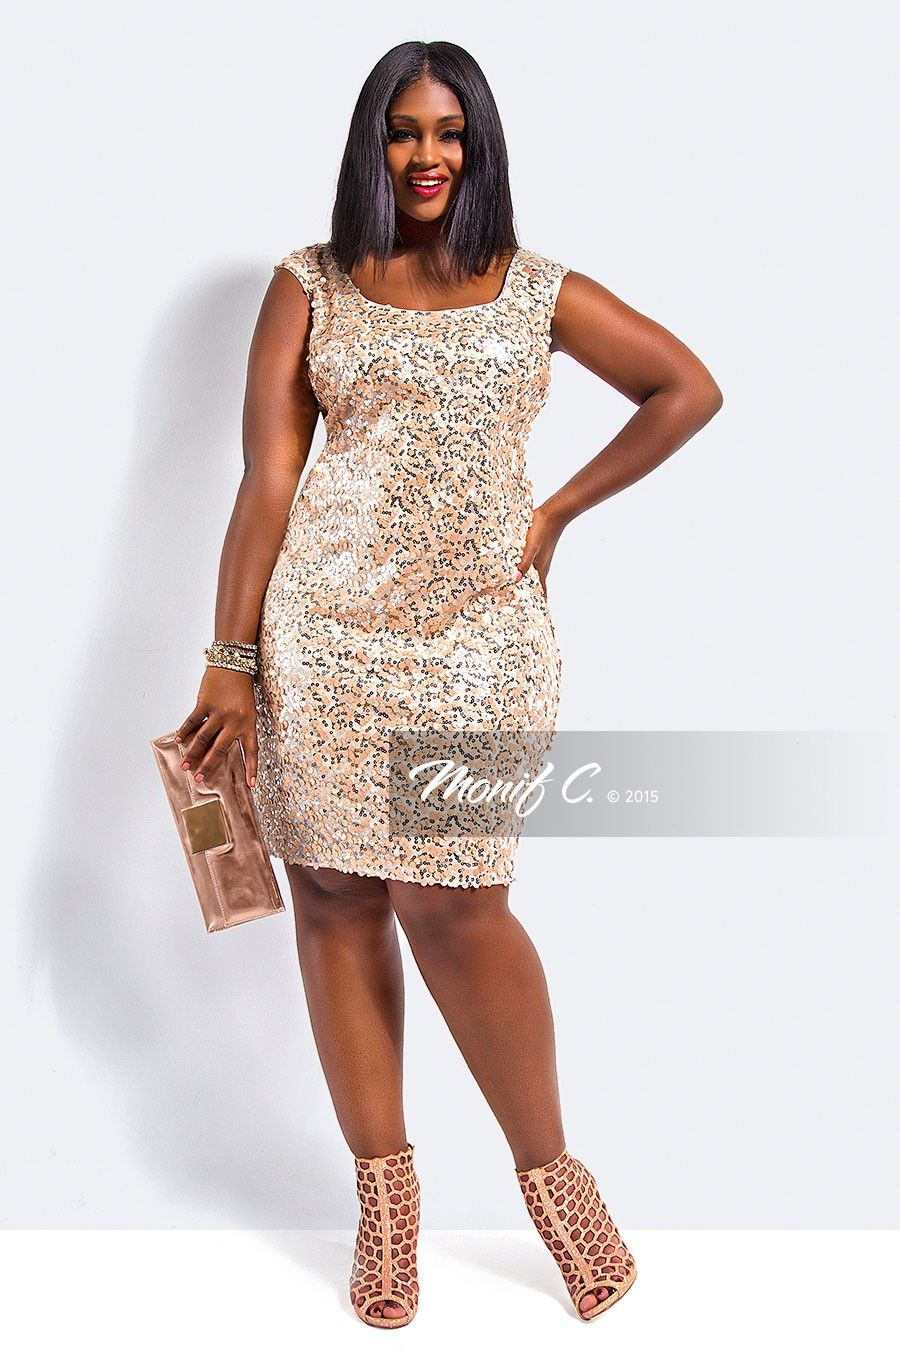 04936e5ace6 Plus Size Sequin Dress - Monif C Plus Size Clothing